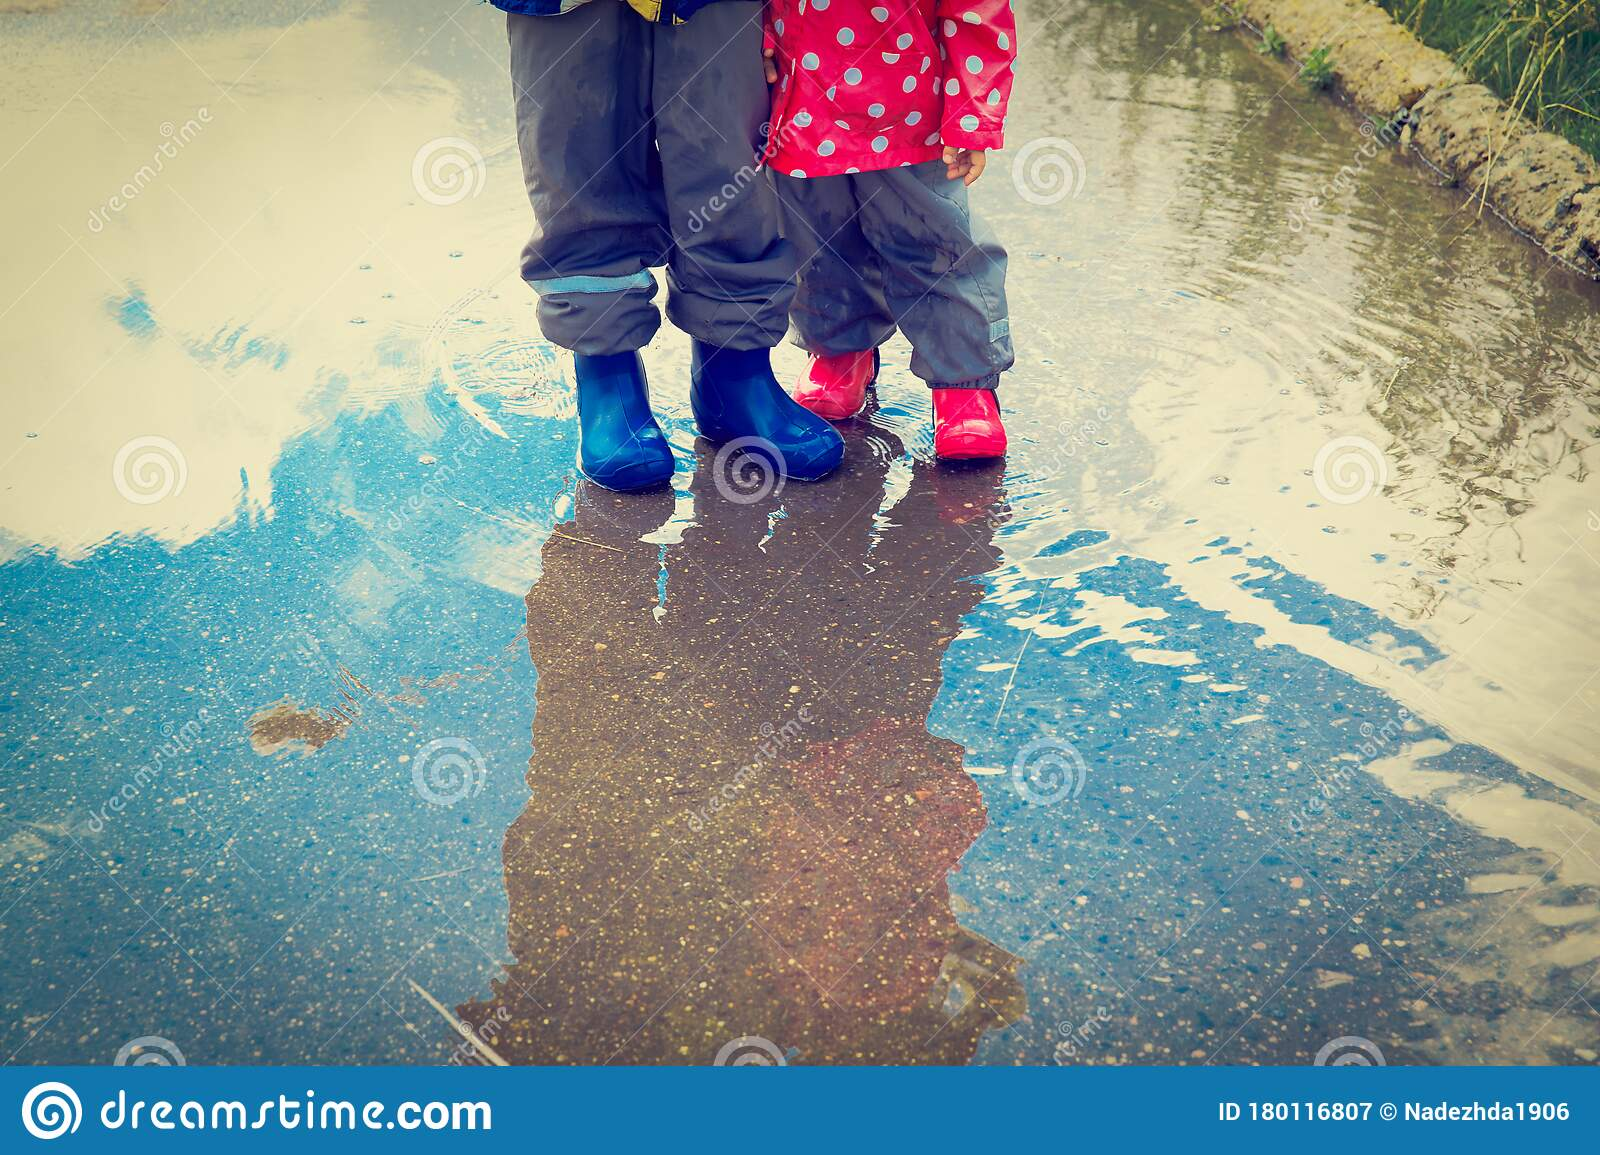 Boy And Girl Playing In Water Pool Stock Image - Image: 24561